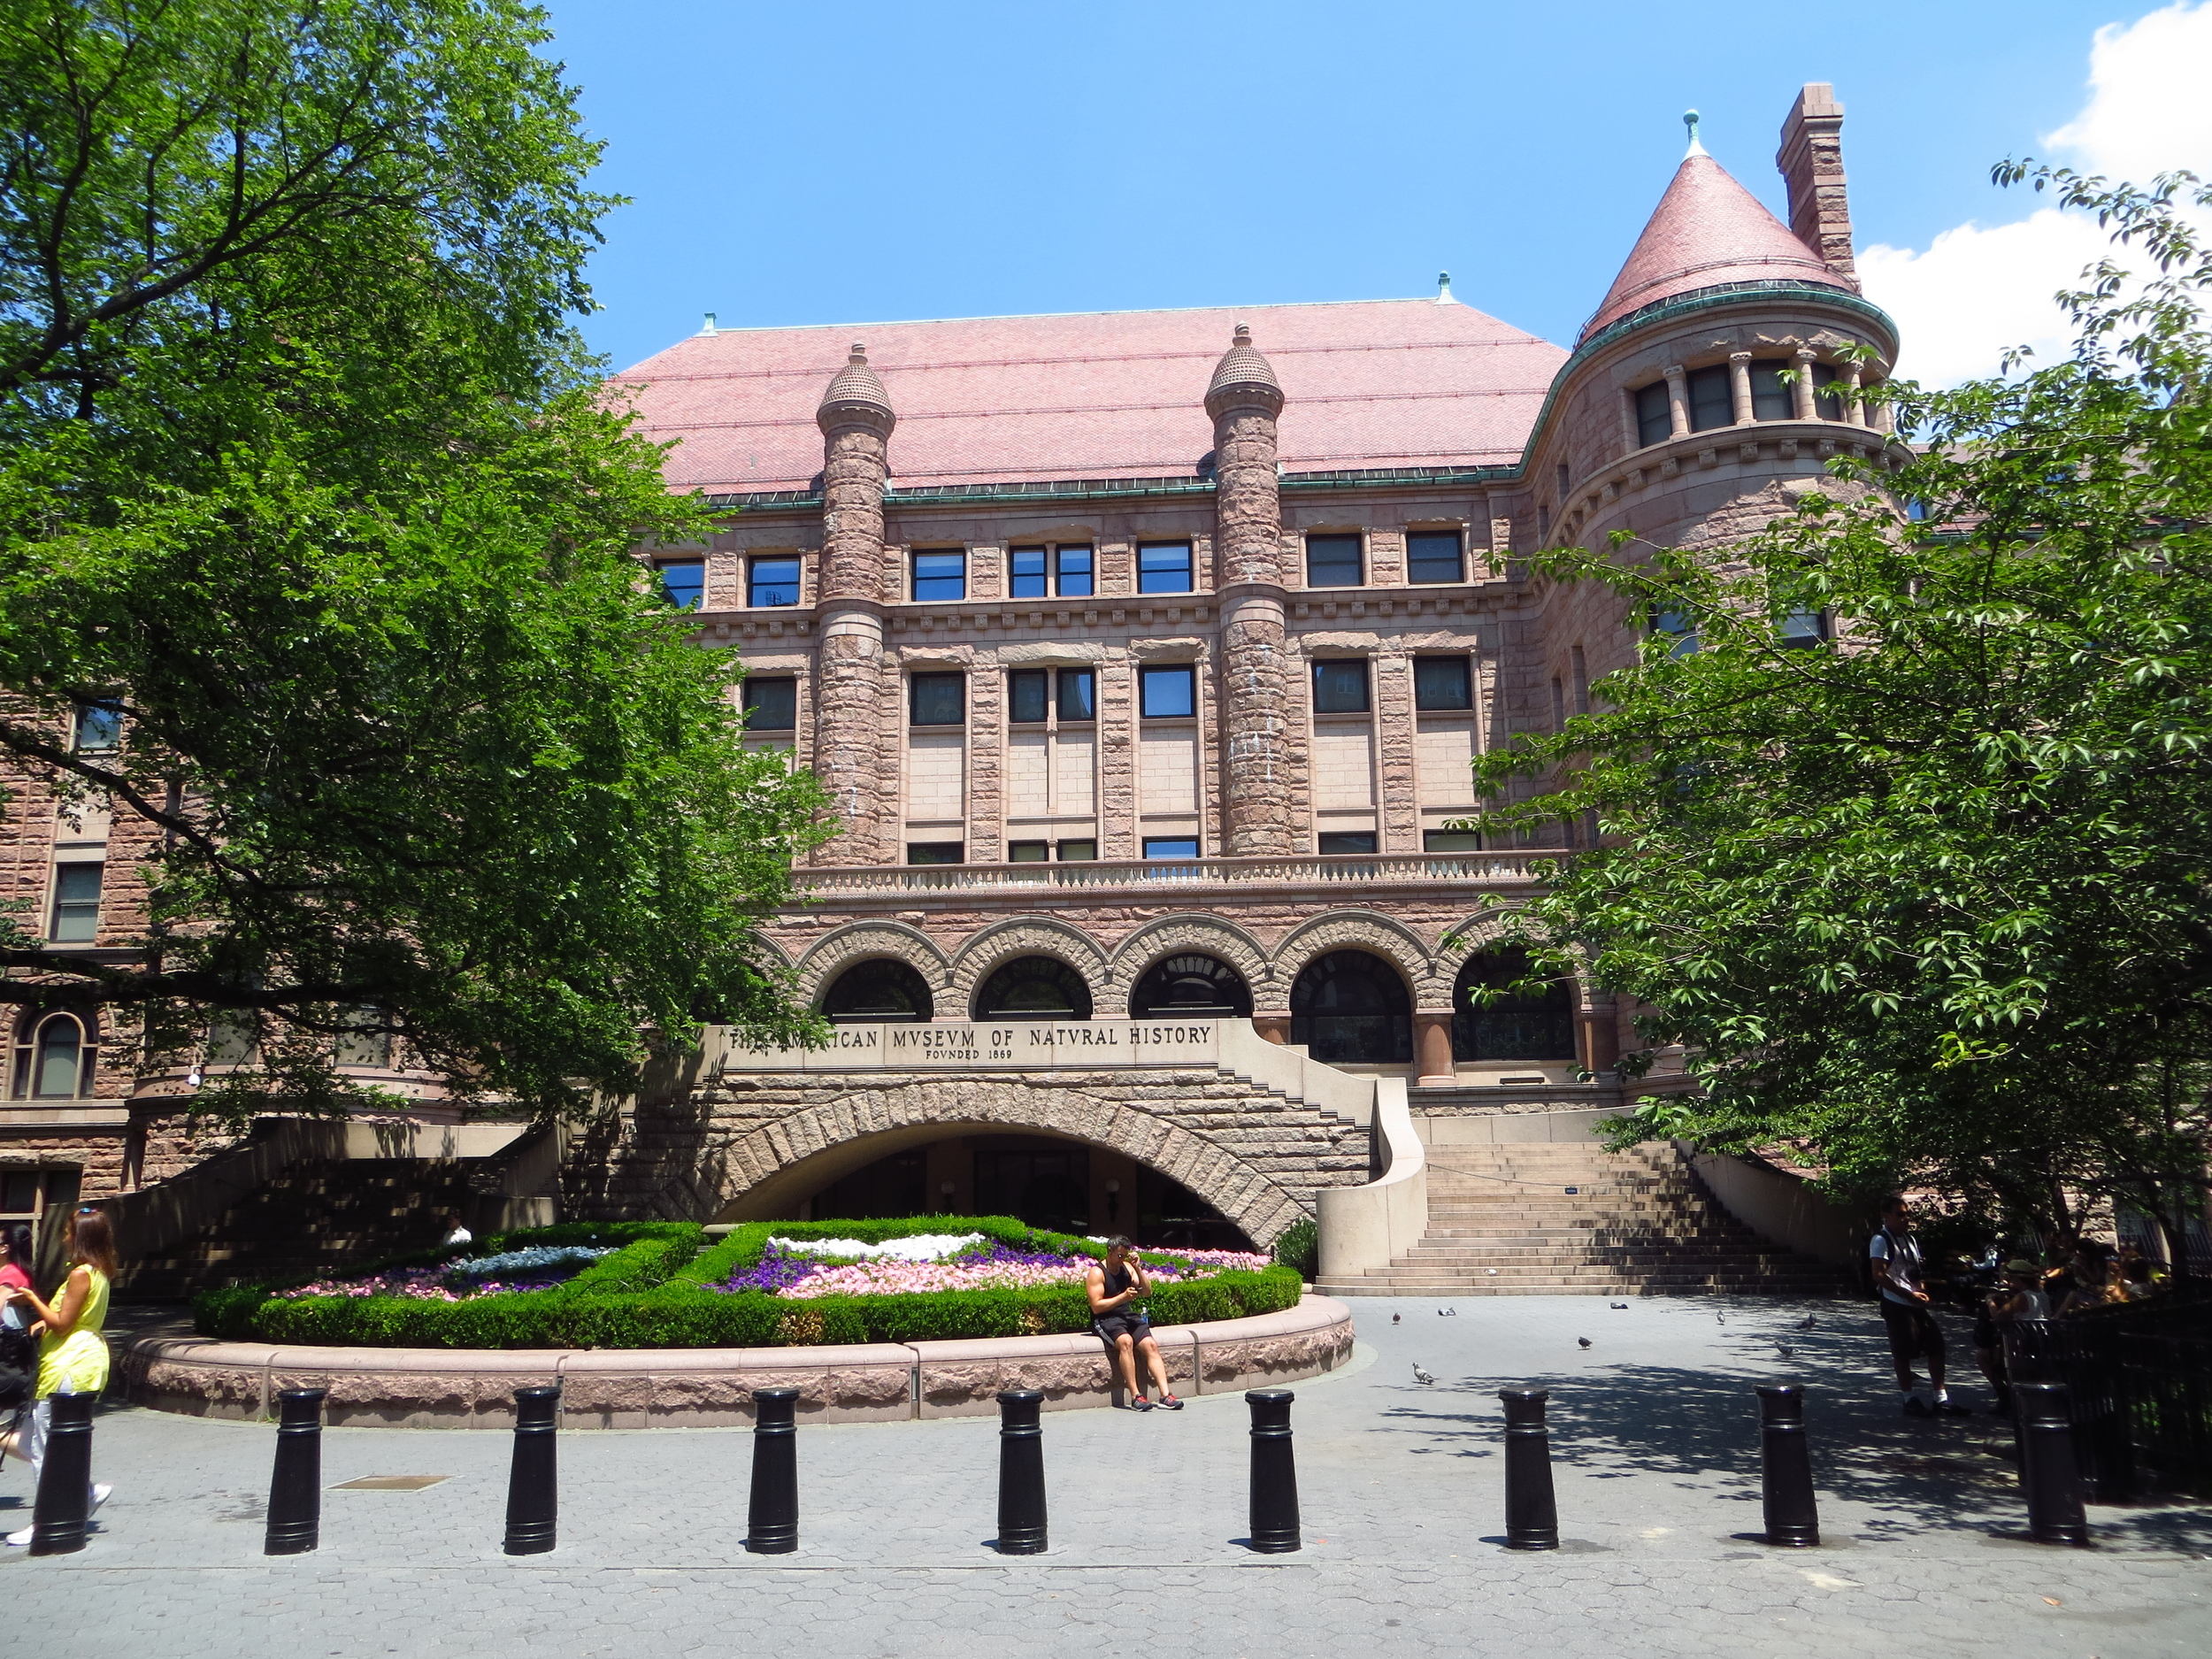 American Museum of Natural History (south entrance)